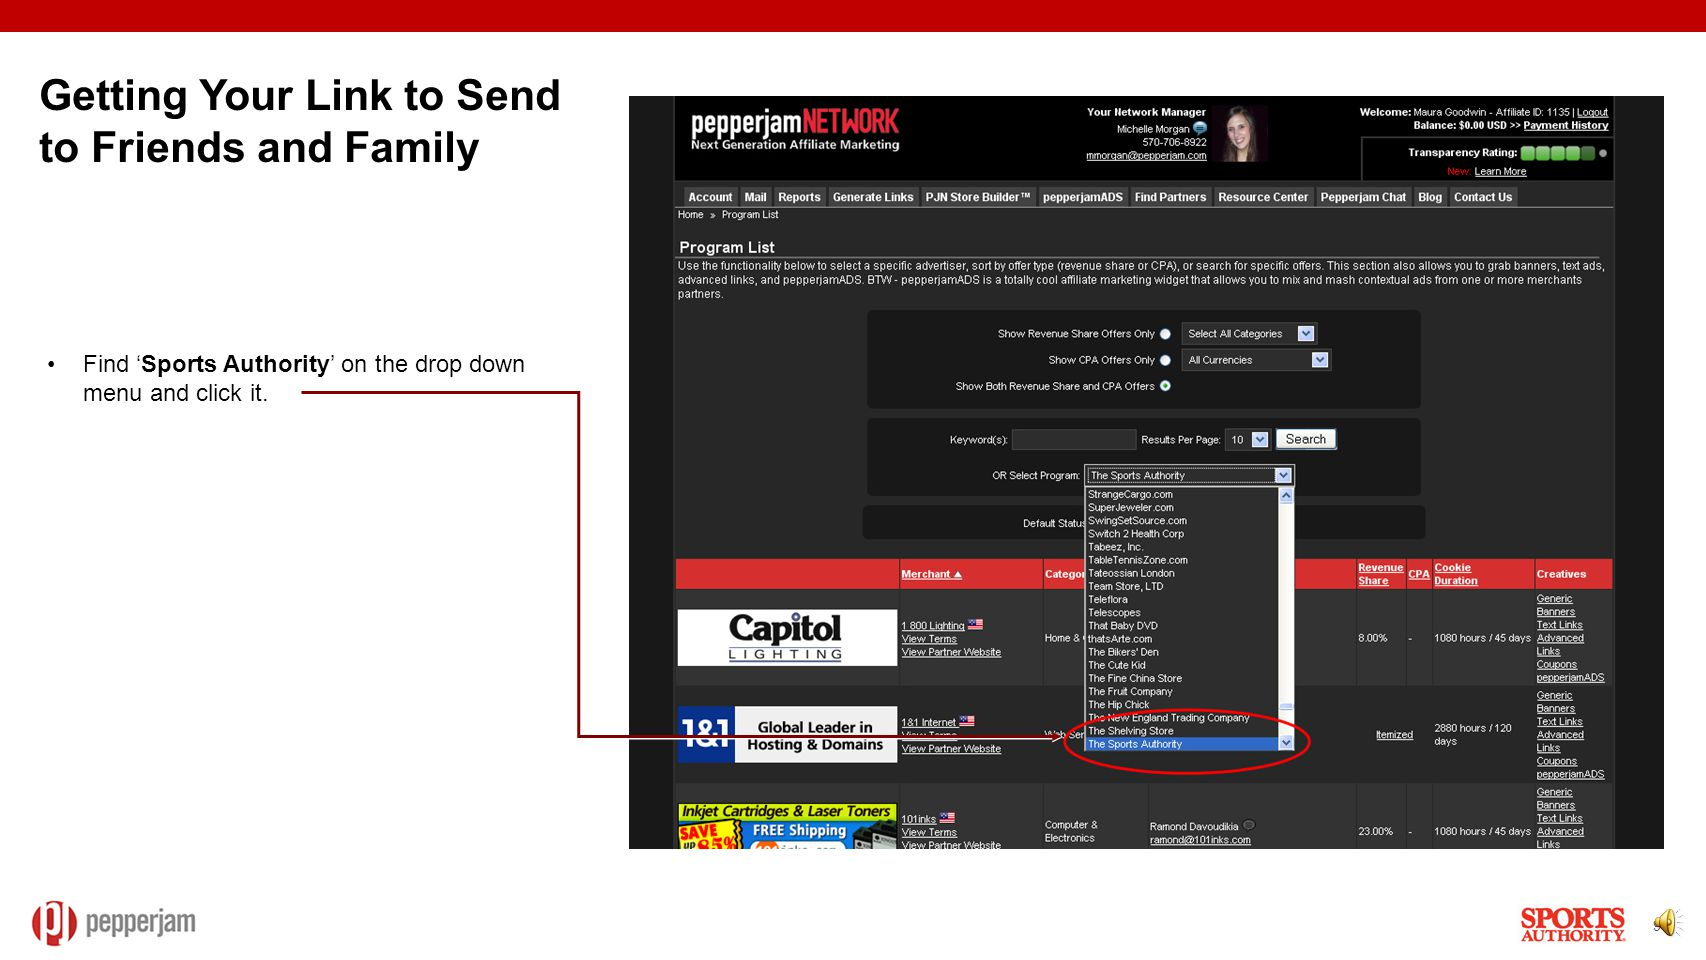 8 Log into the Pepperjam interface with the email address and password you created during sign-up: http://pepperjamnetwork.com/ After logging in, go to the 'Generate Links' tab on the top of the page.